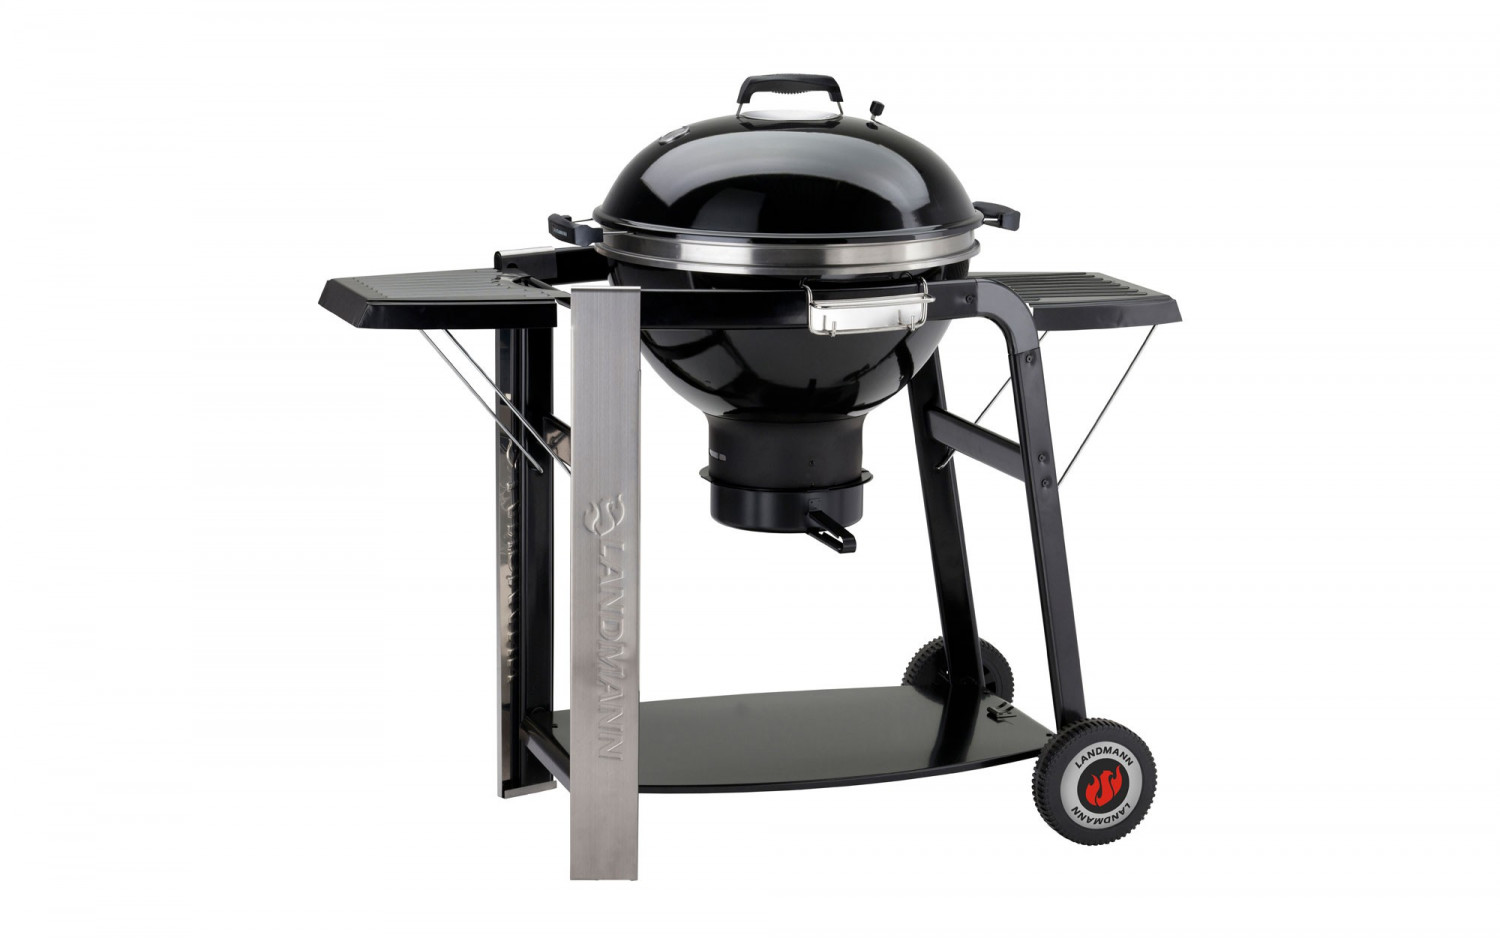 Landmann Holzkohlegrill Collection Nummer 1 : Landmann holzkohle kugelgrill black pearl select 31346 baidani shop